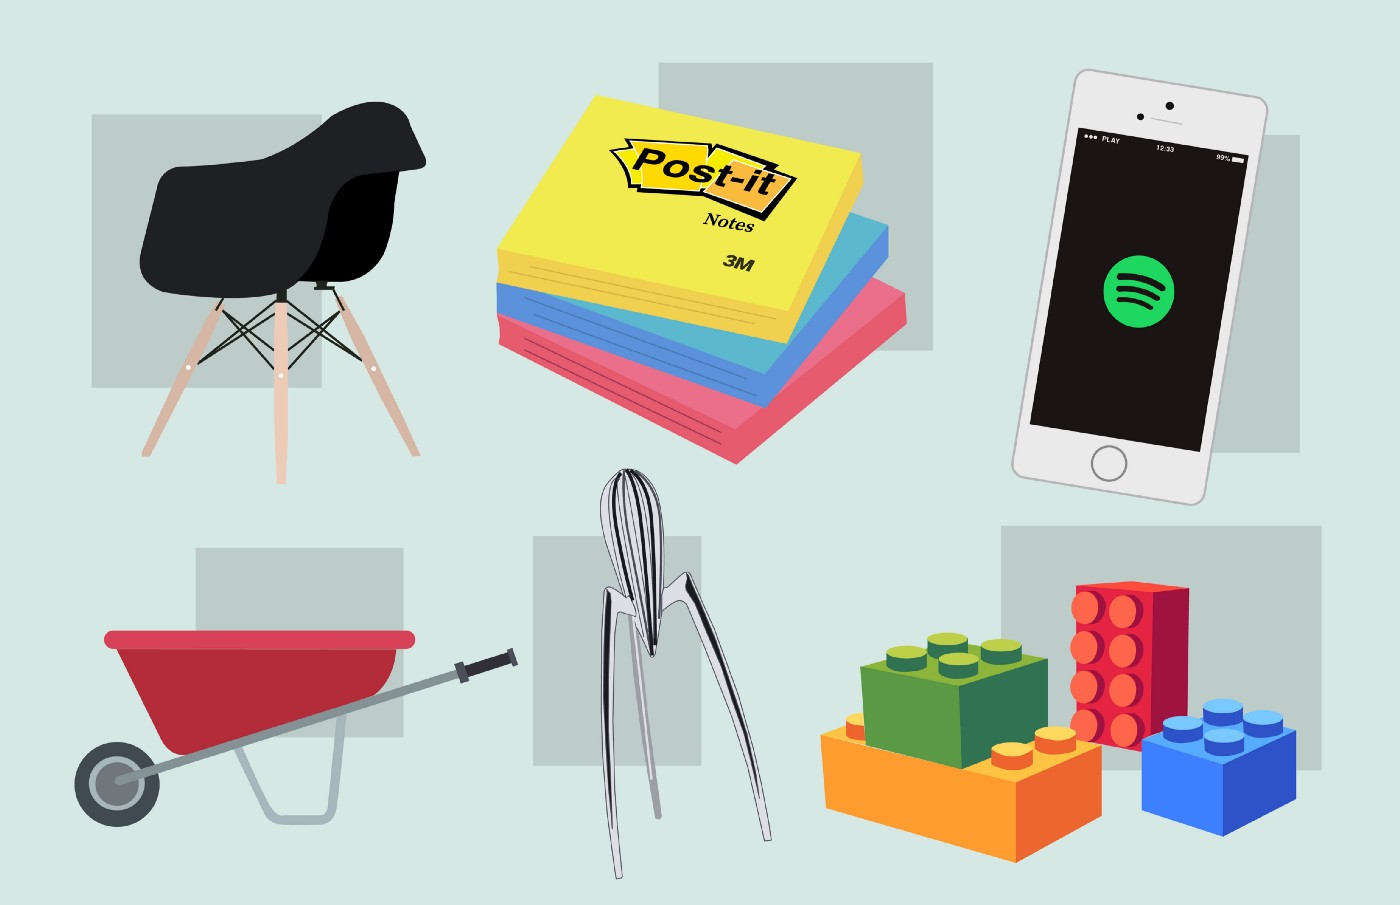 Illustrations of an Eames chair, post-it notes, the Spotify app, a wheelbarrow, the Philippe Starck Alessi Juicy Salif Citrus Squeezer, and a few legos.